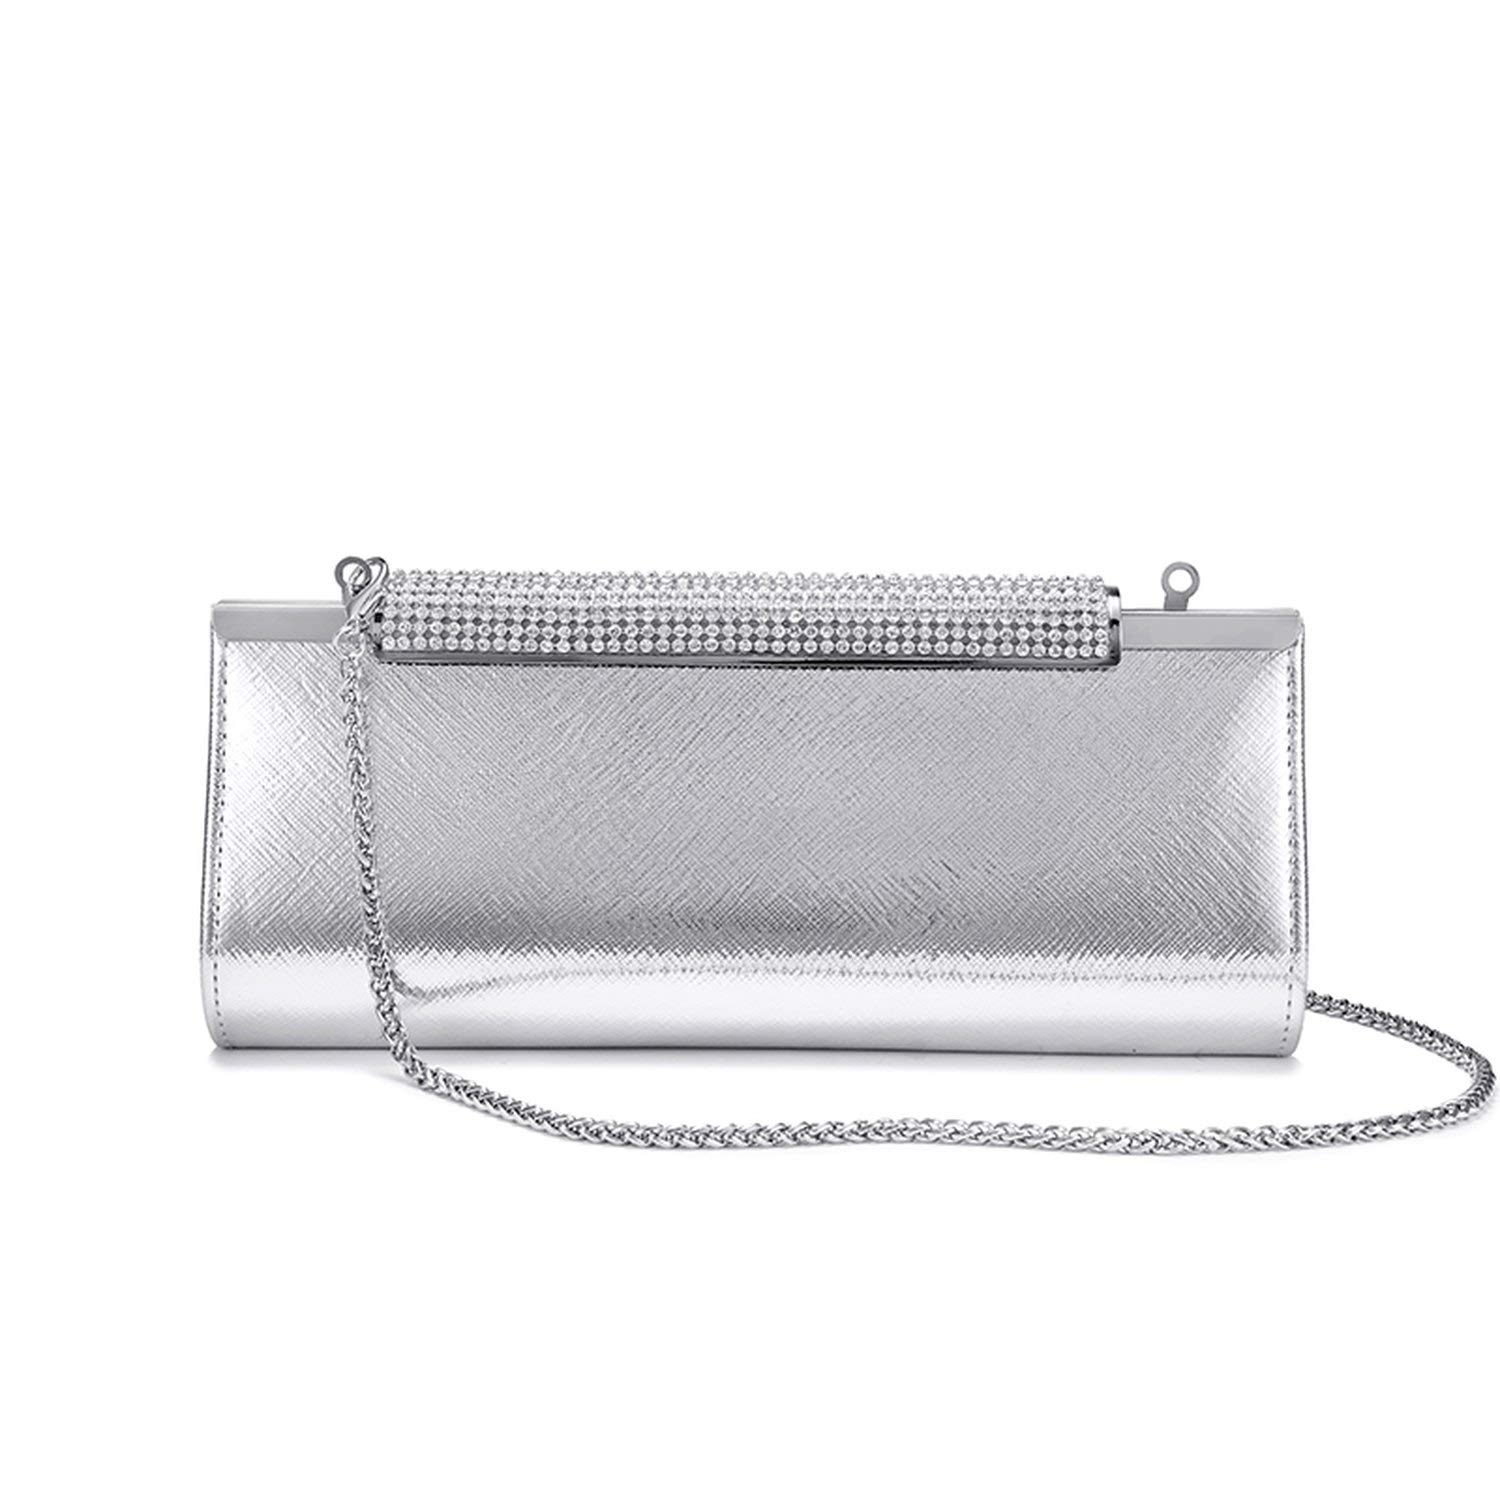 Silver Glitter Evening Bag Ladies Evening HandBag Wedding Races Prom Party